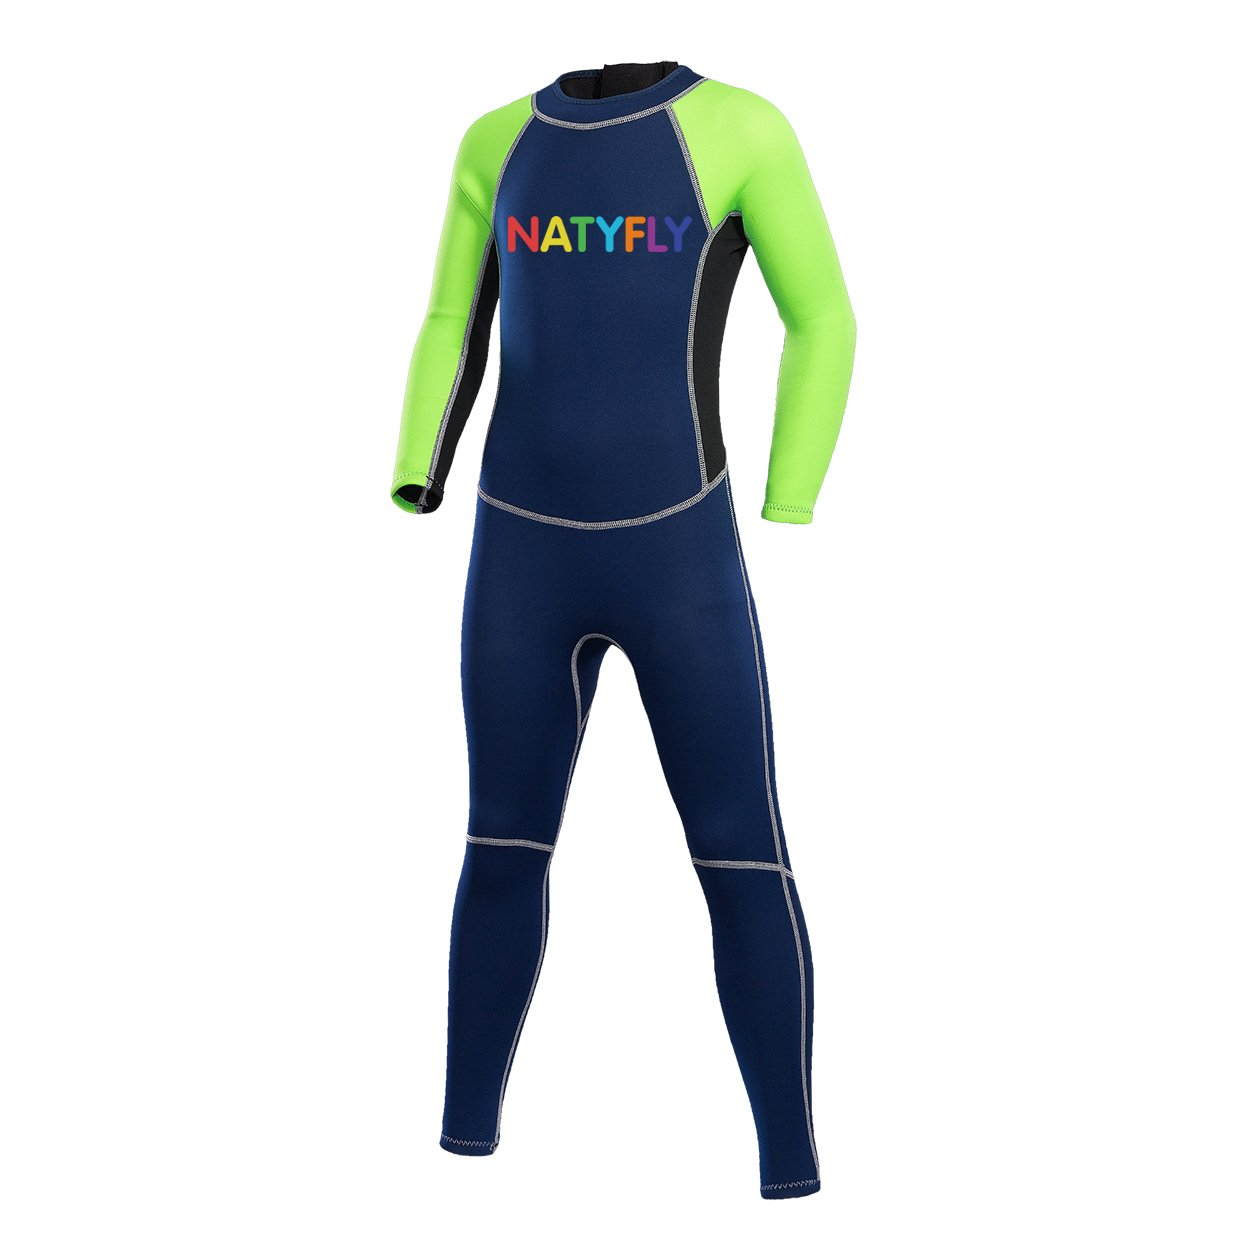 NATYFLY Neoprene Wetsuits for Kids Boys Girls Back Zipper One Piece Swimsuit UV Protection-Brand (Green-2MM-Long Sleeve, XS-for Height 32''-37'')